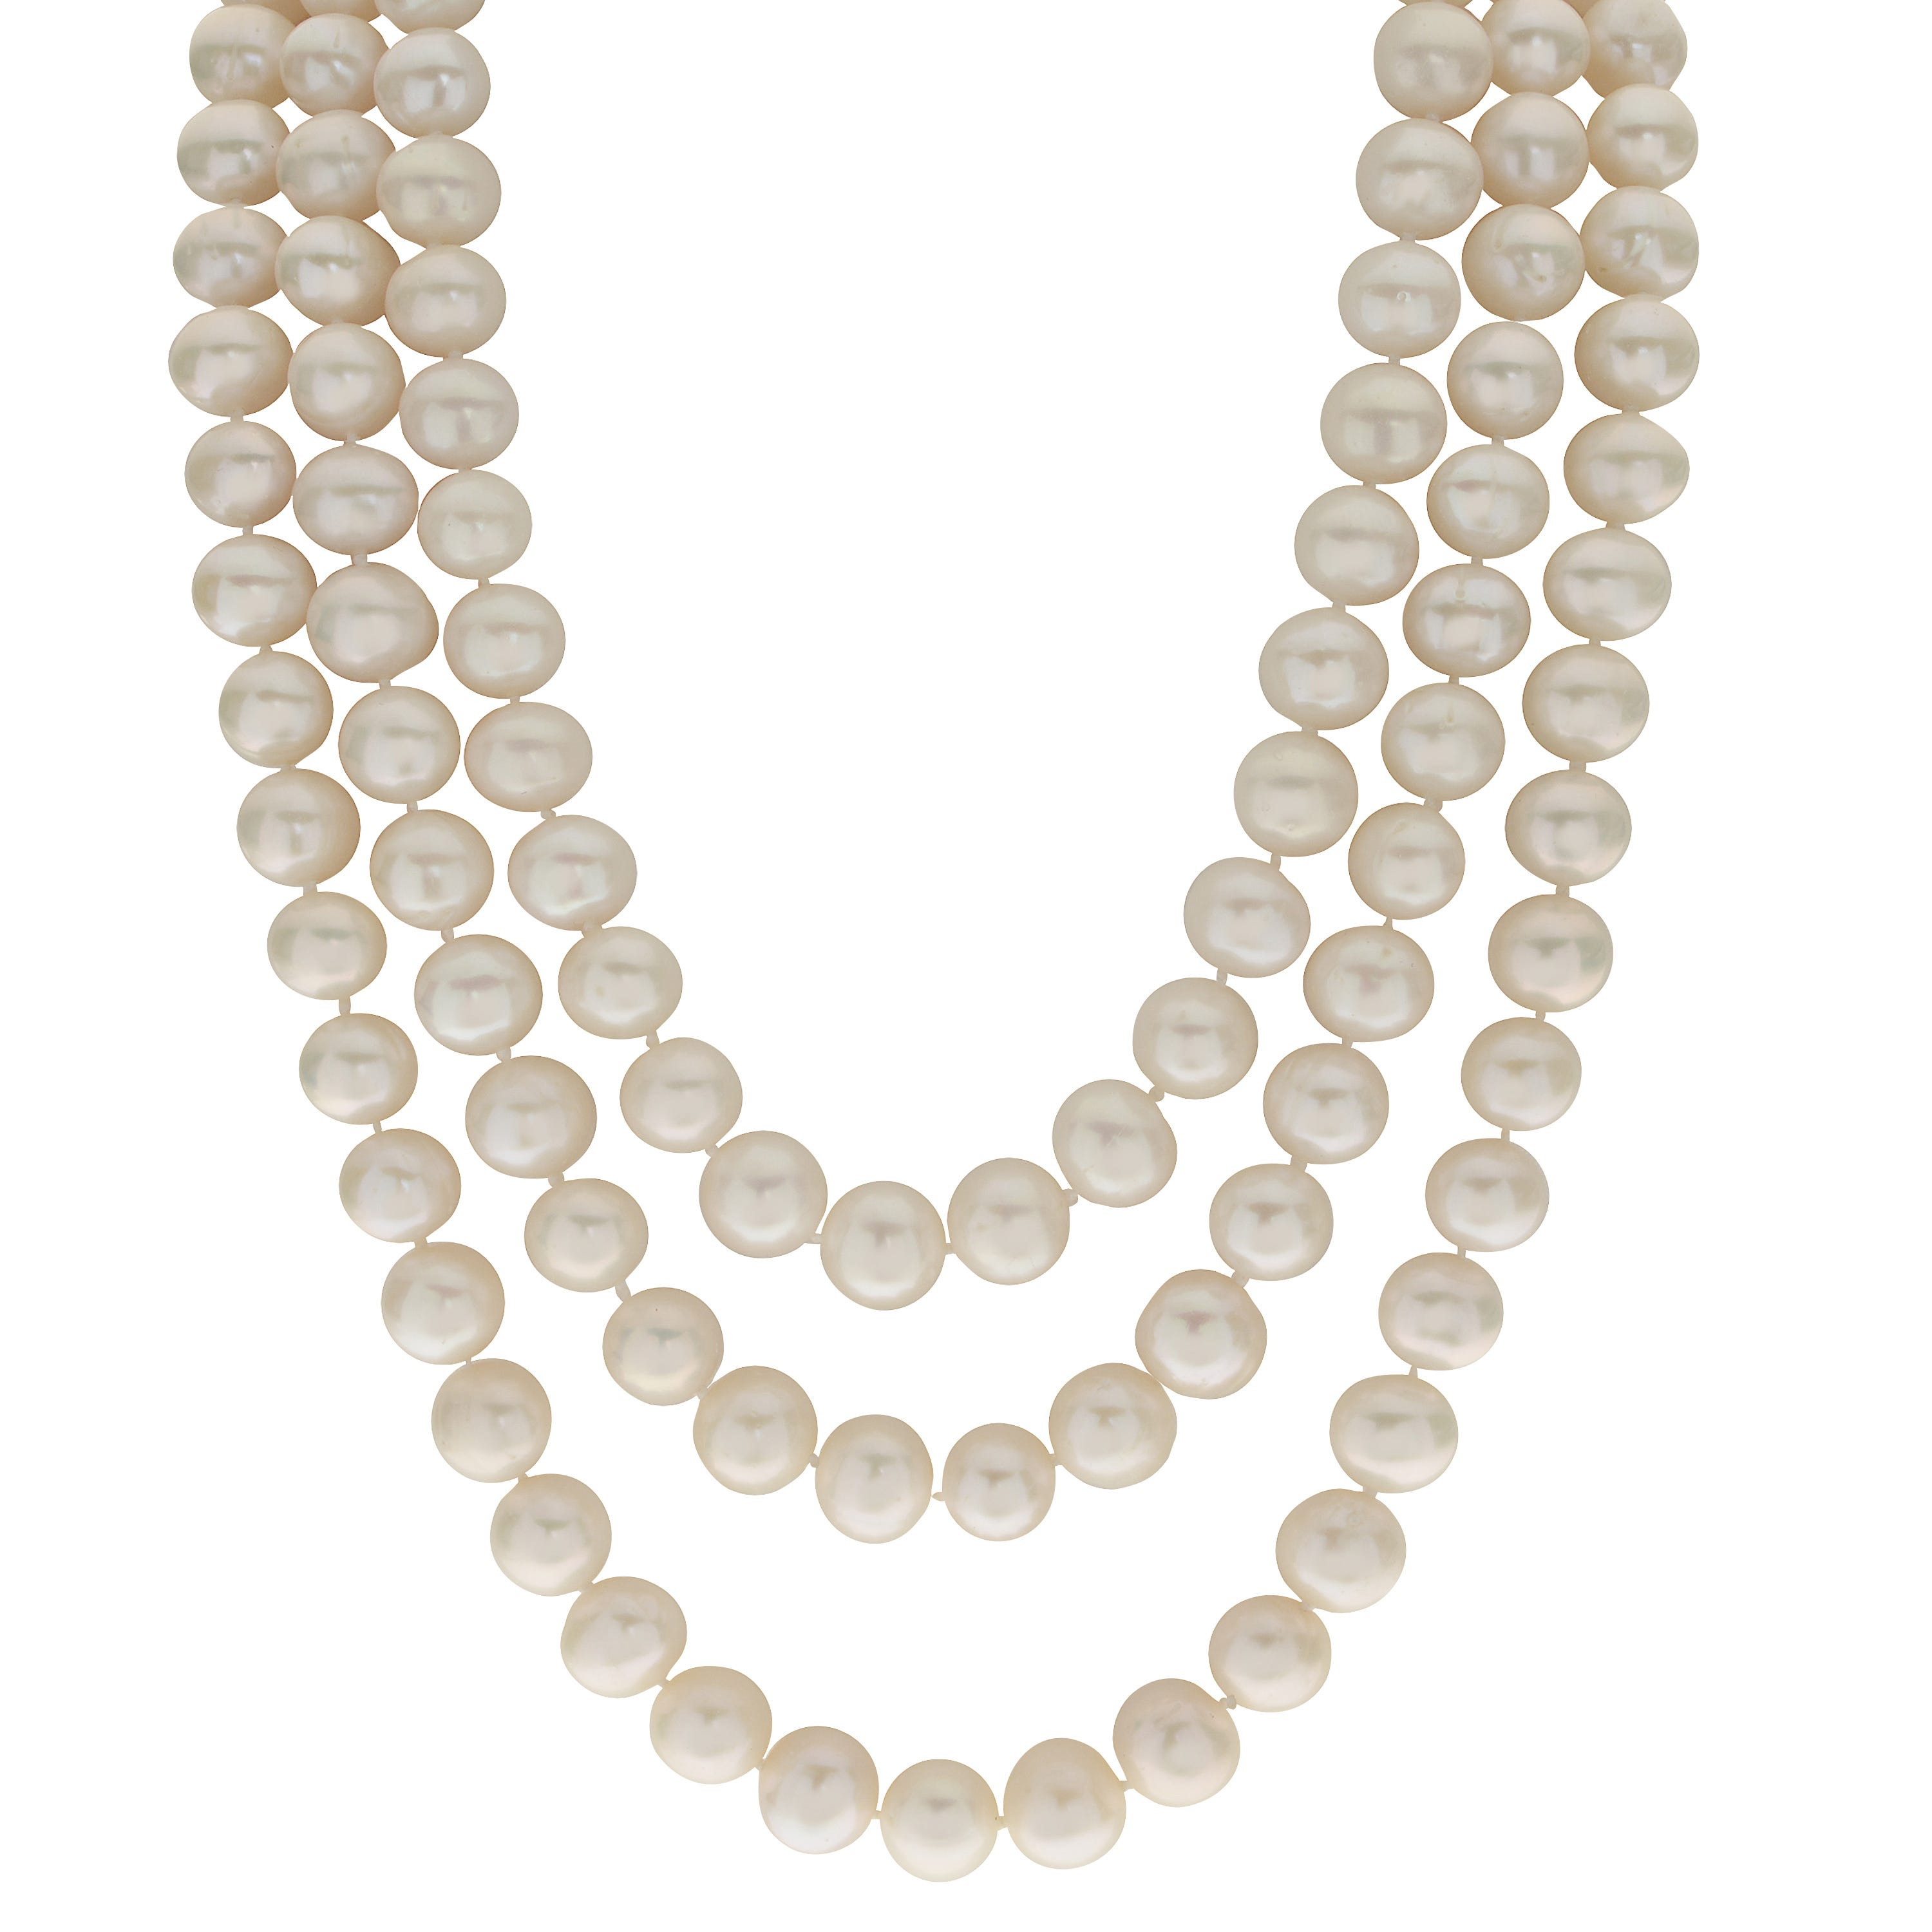 Imperial Pearl Graduated Freshwater Pearl Necklace 50